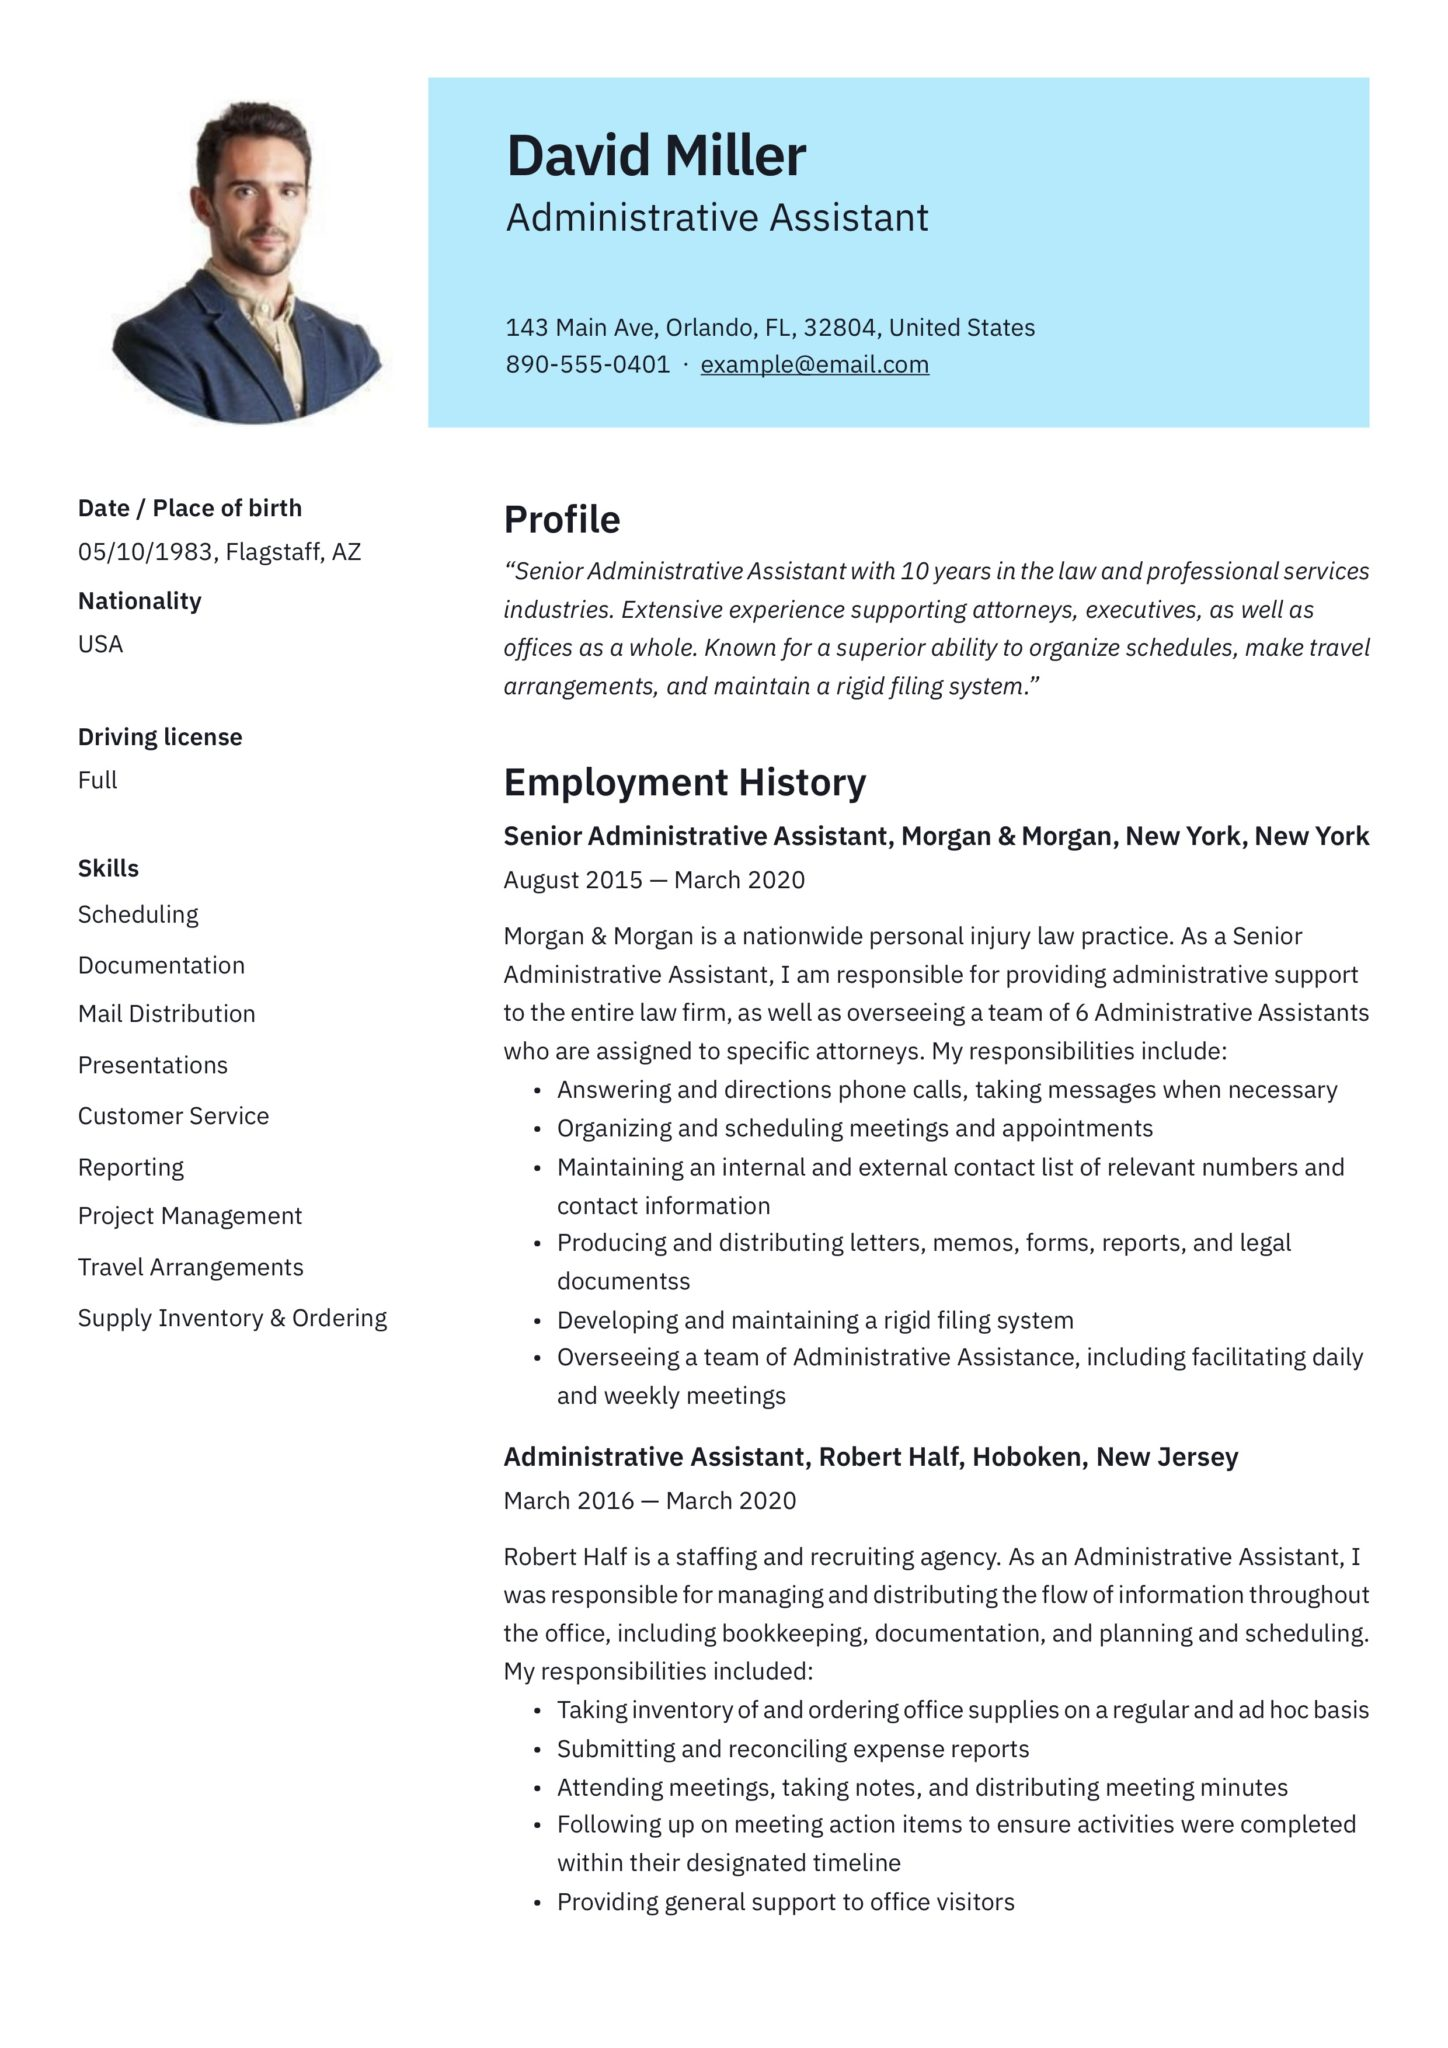 free administrative assistant resumes writing guide pdf resume templates scaled web Resume Free Administrative Assistant Resume Templates